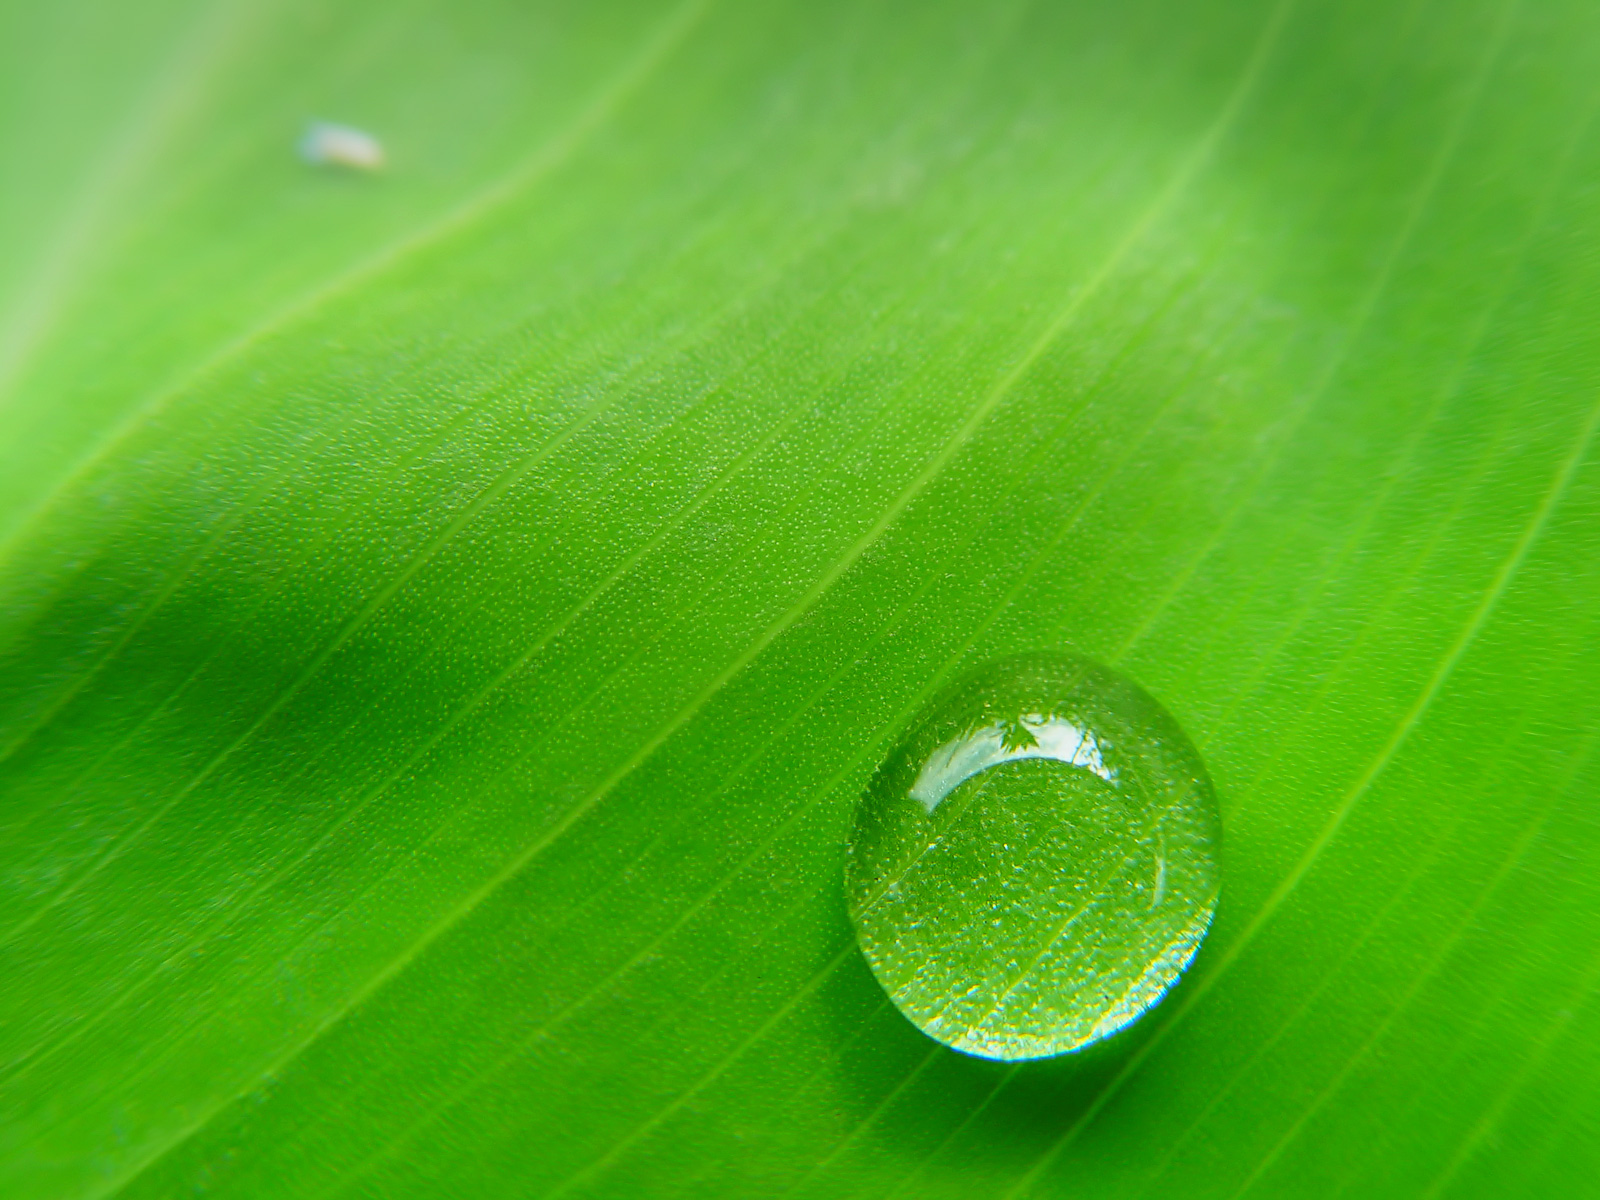 A drop on a green leaf - Wallpaper from category nature, a very beautiful and stylish image